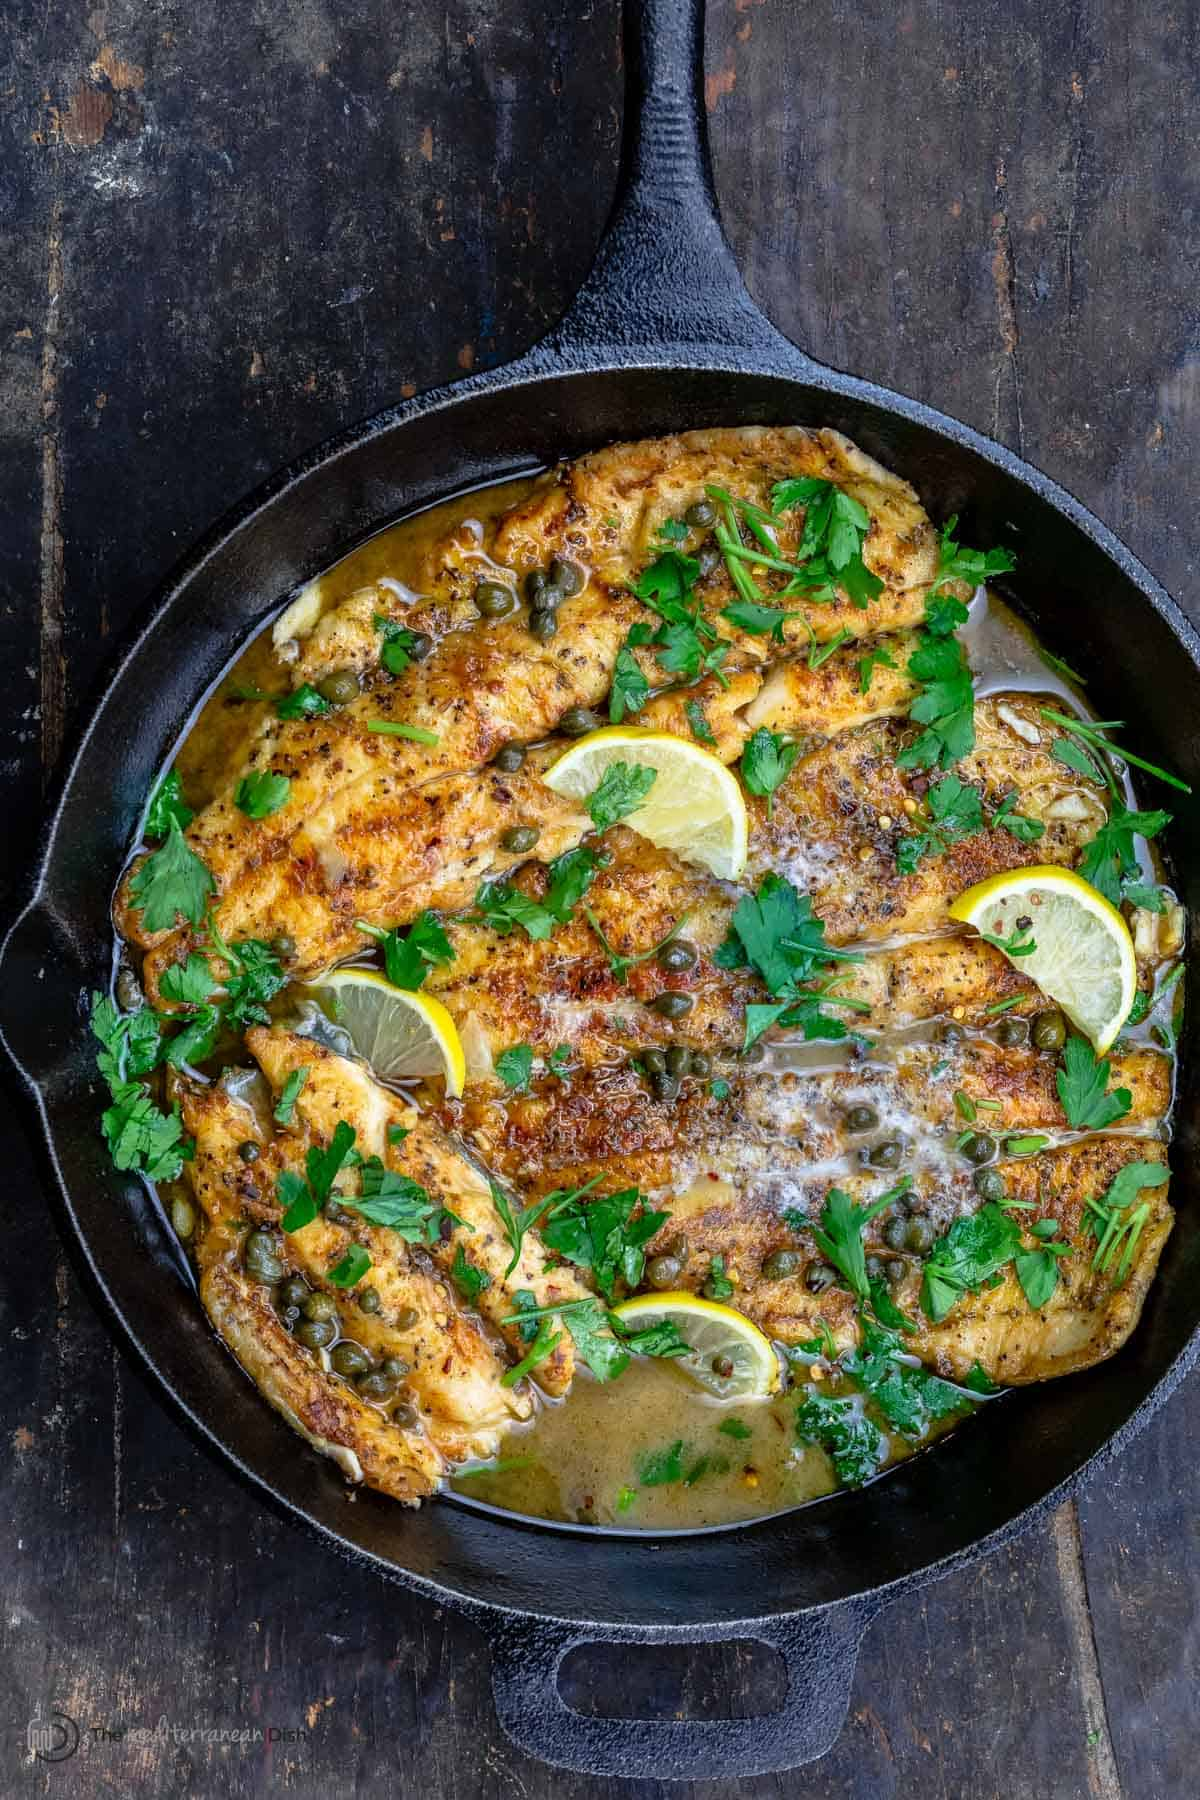 Pan-seared trout topped with a lemon piccata sauce in a cast iron skillet